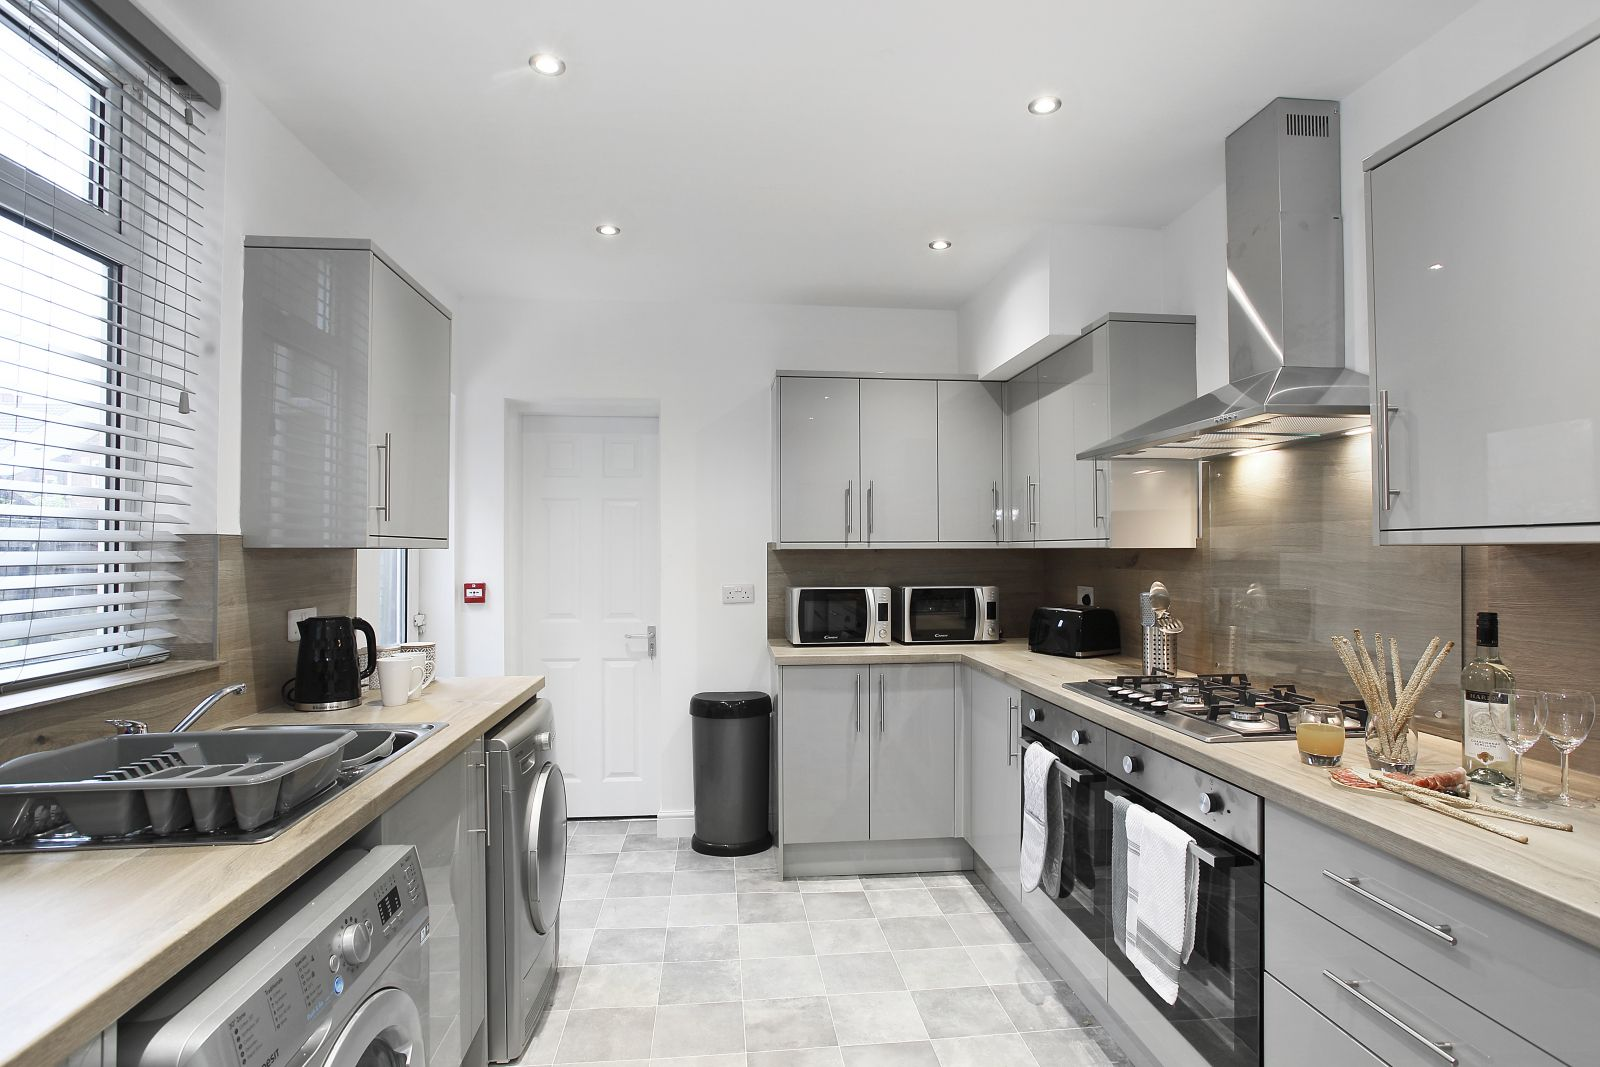 Property photo 1 of 19. Lower Oxford Street Castleford